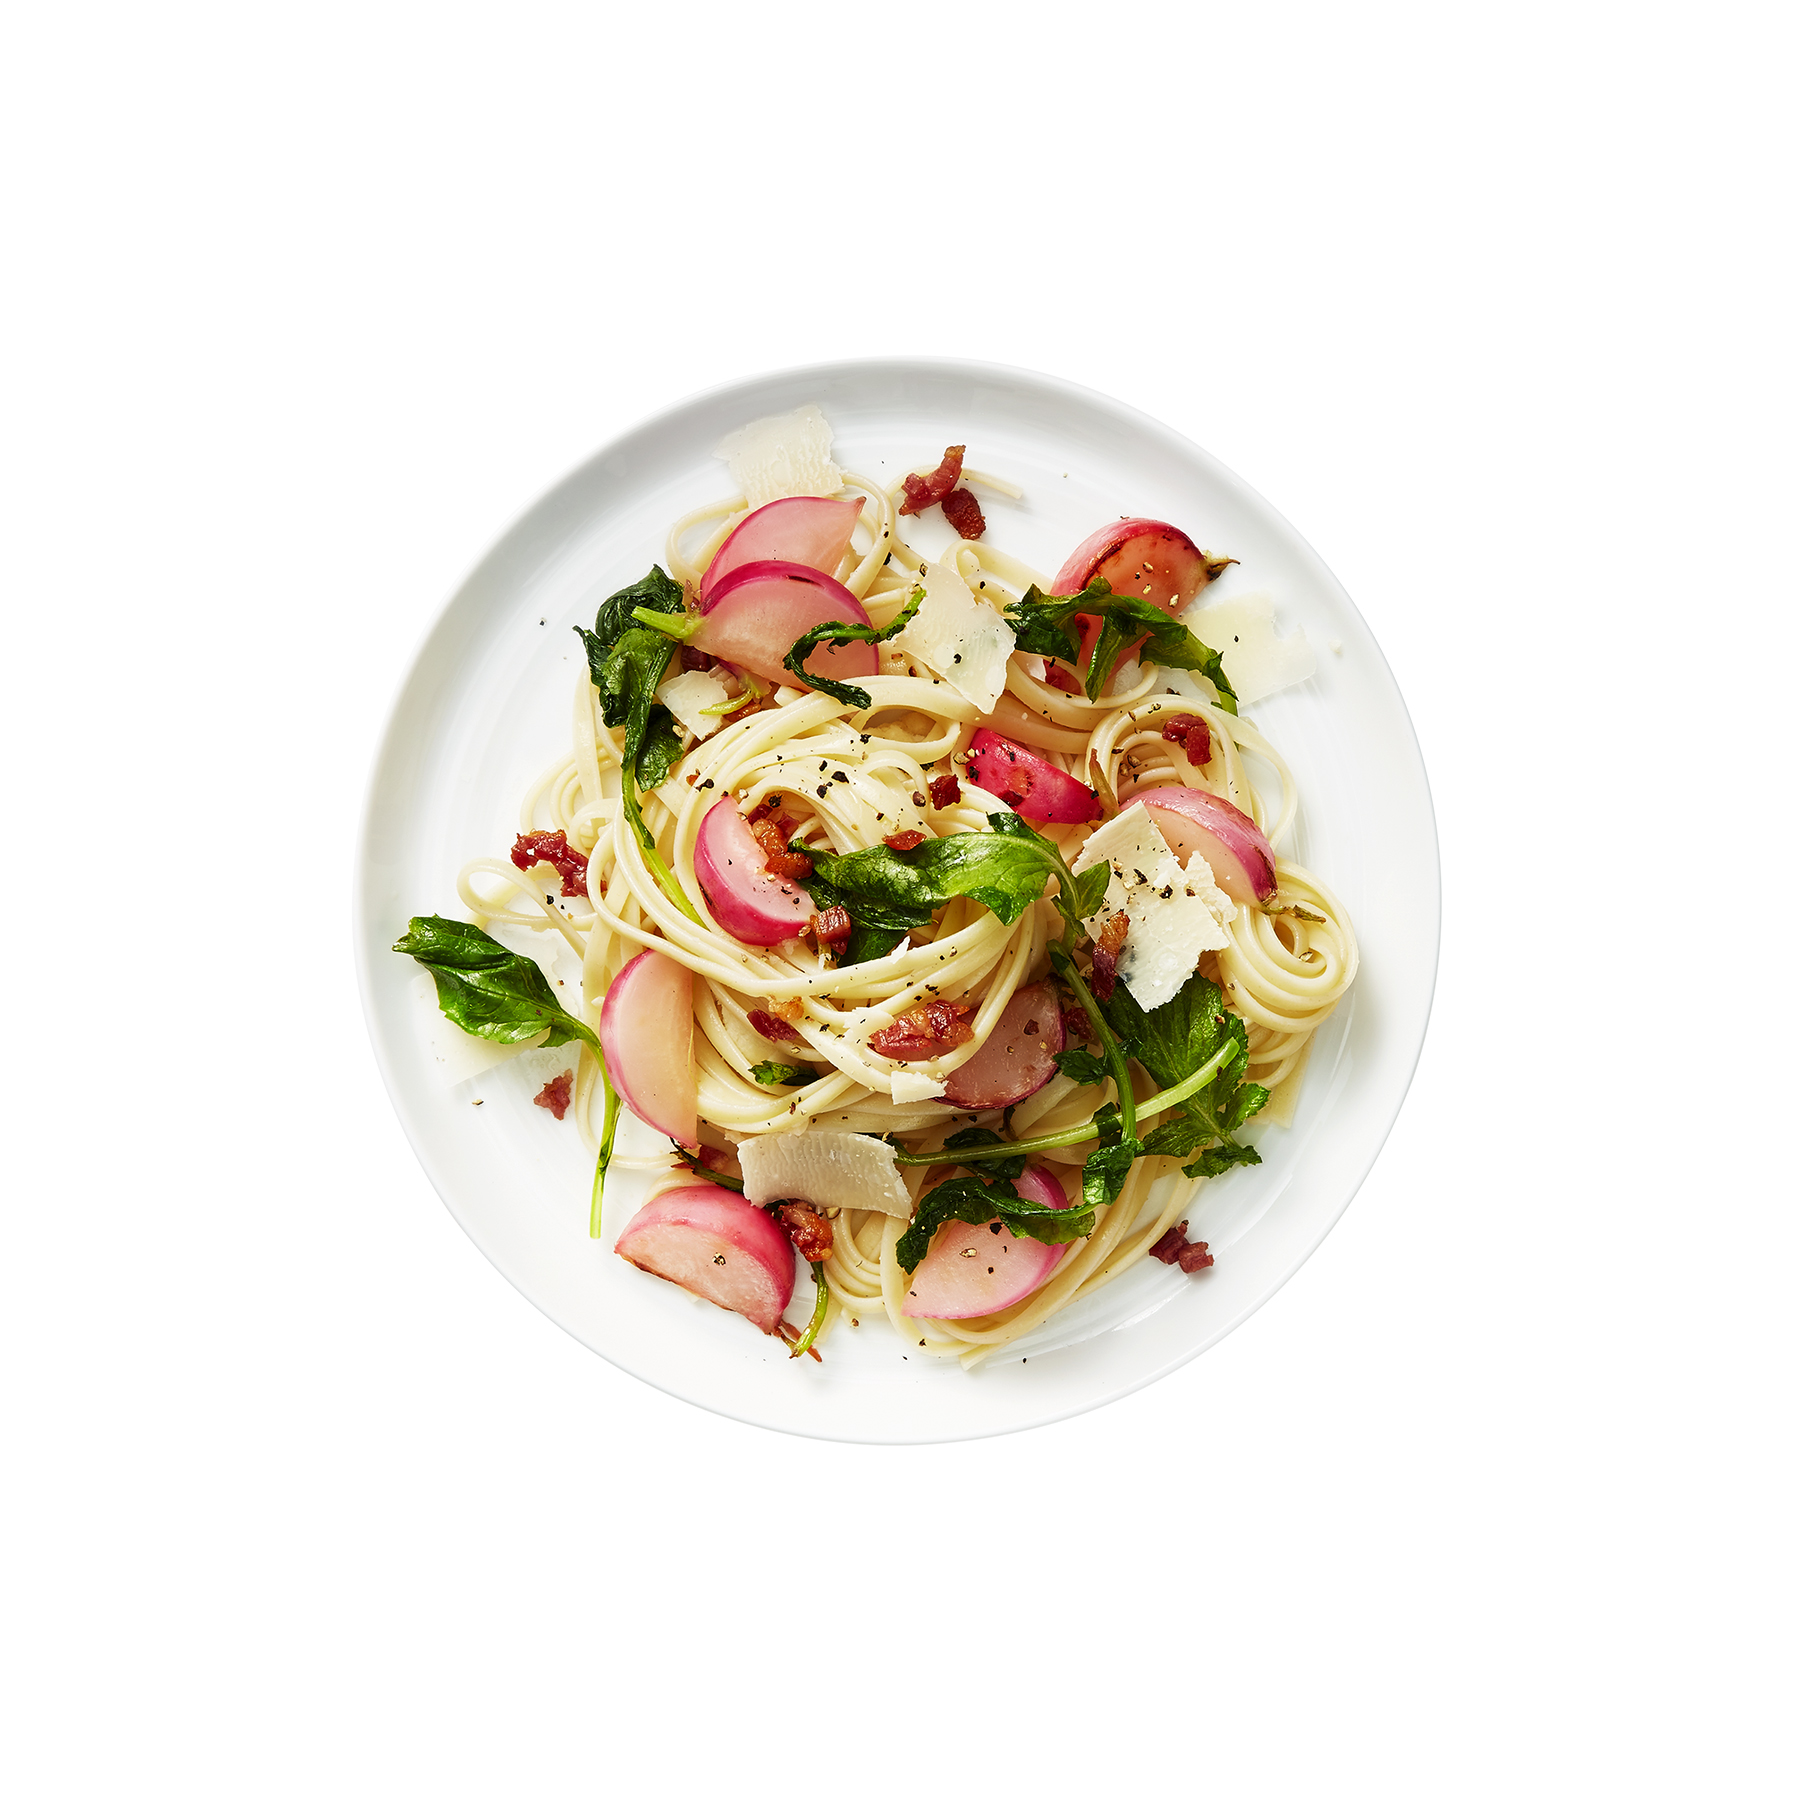 Sautéed Radish, Greens, and Pancetta Pasta